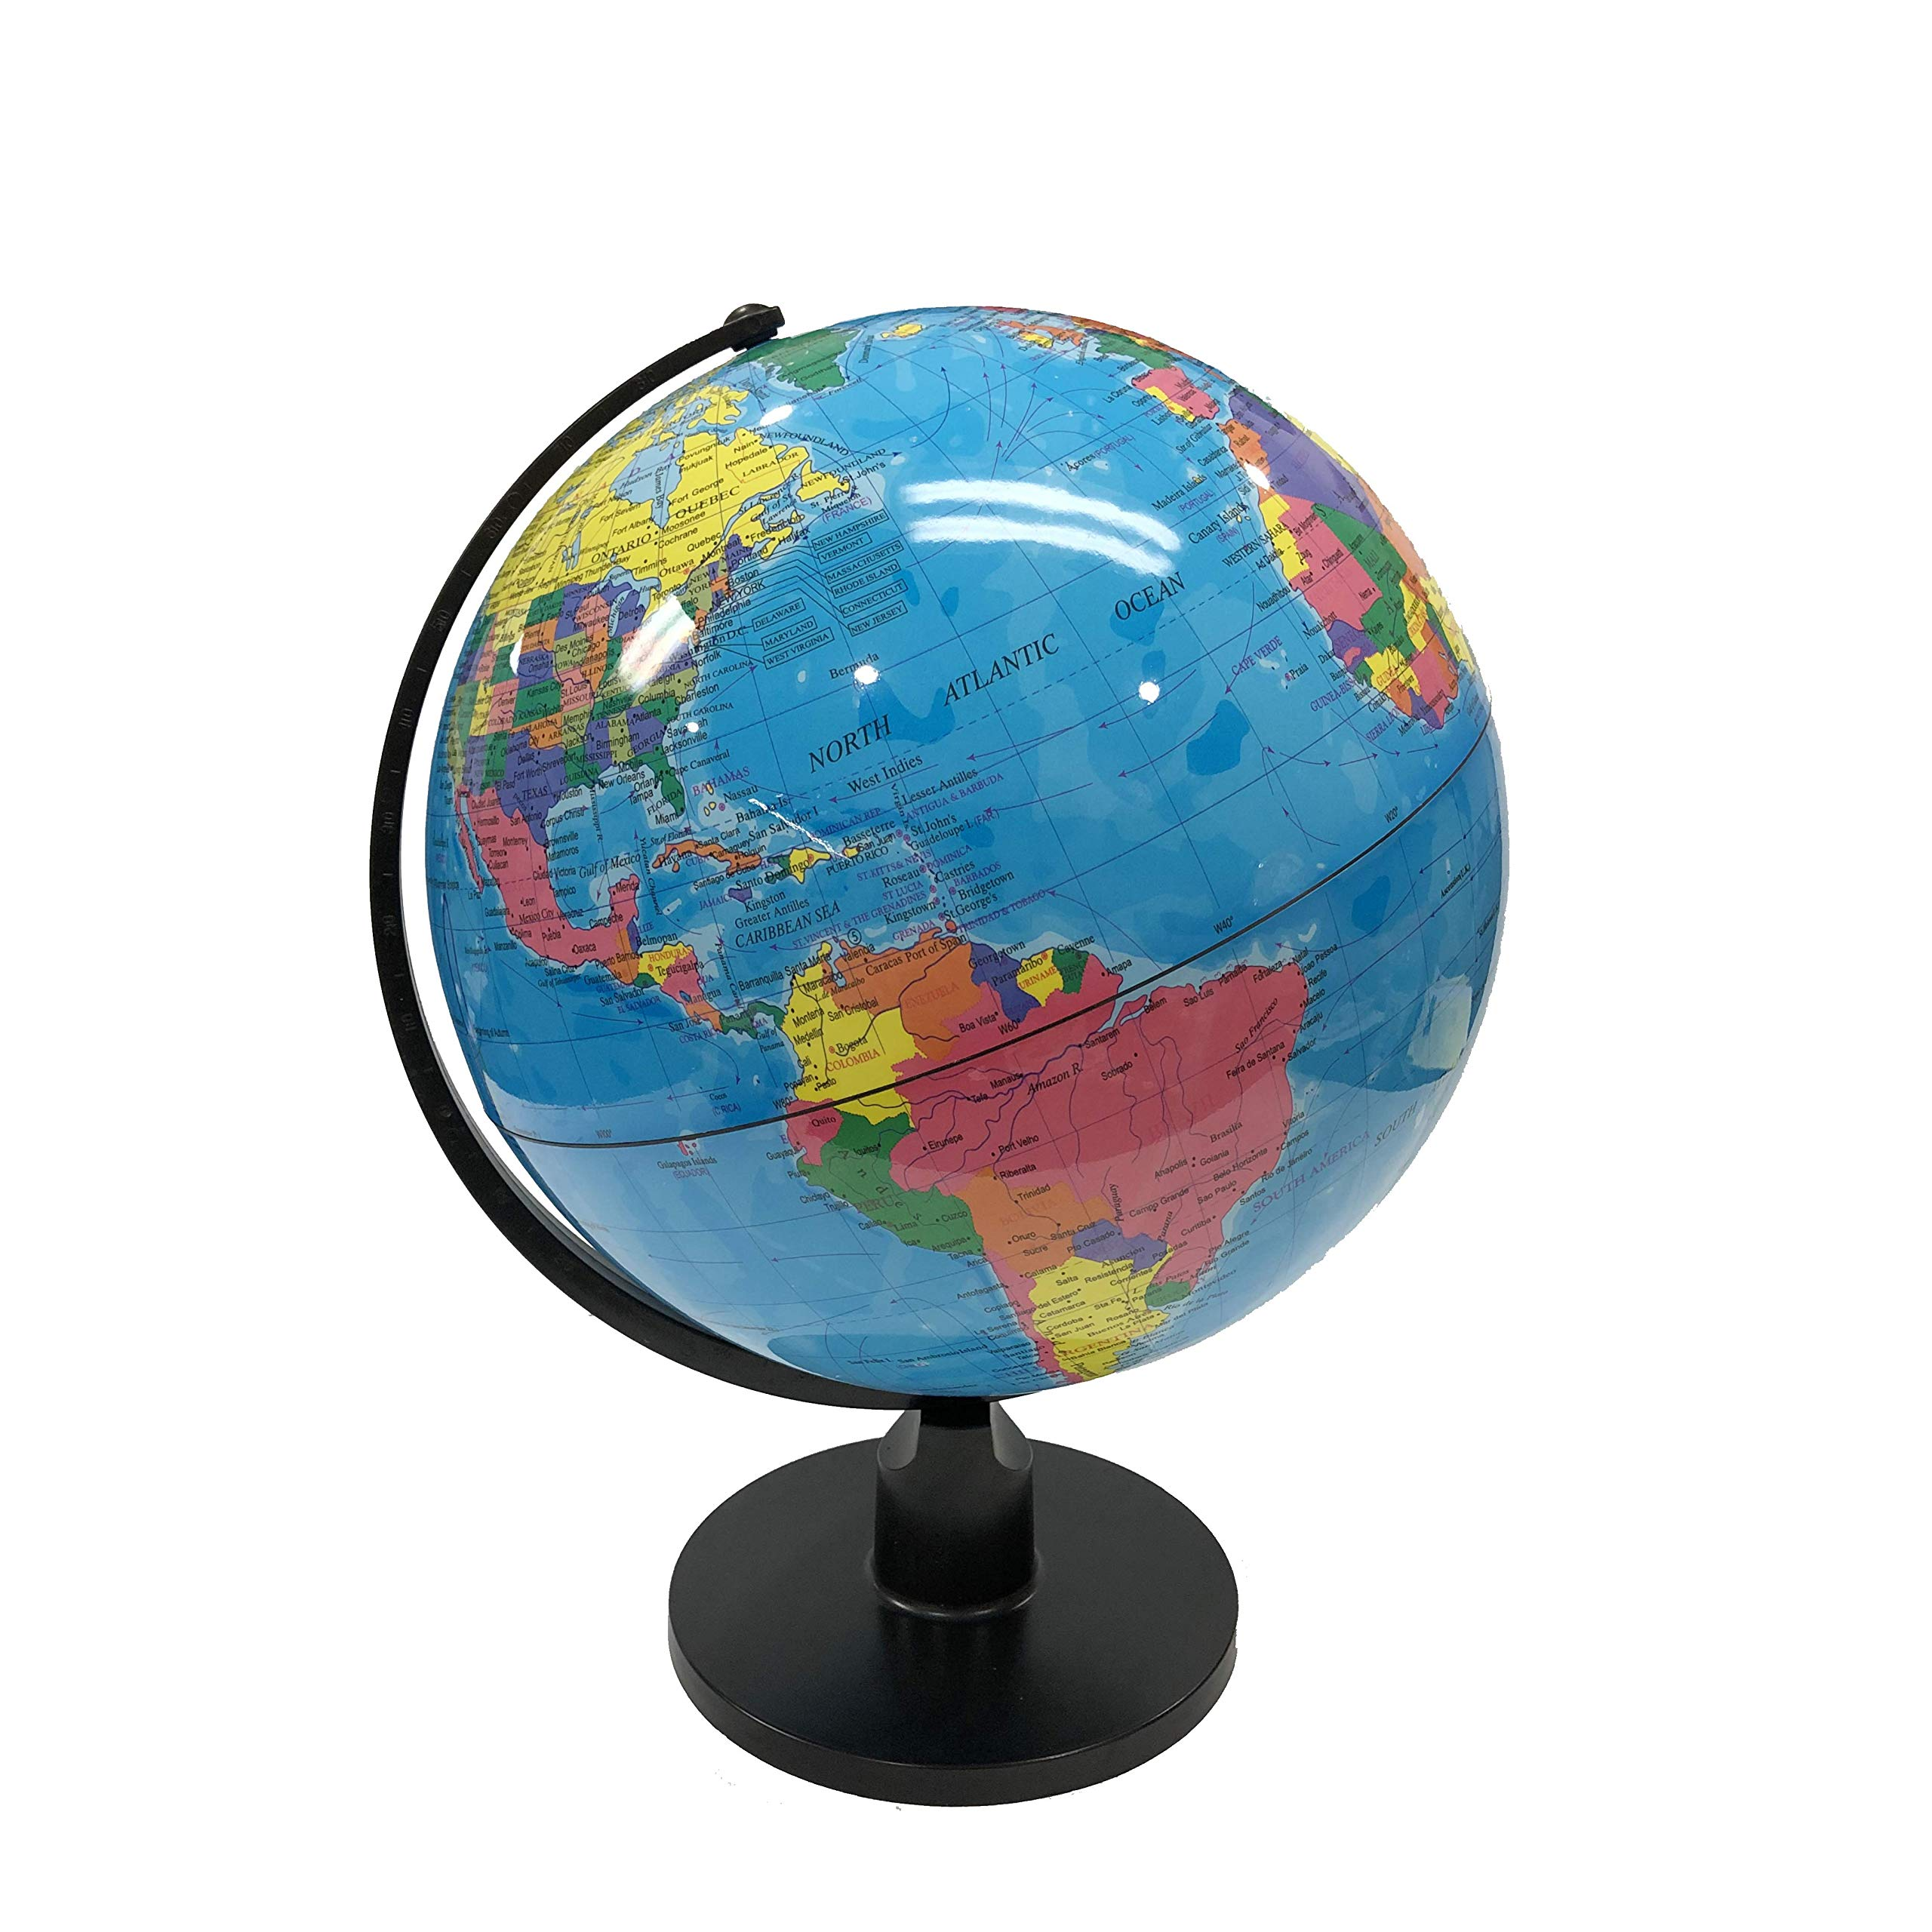 World Globe Great for Kids and Adults with Stand Desk 8 Inch Globe 12 Inch Educational Deluxe Blue Ocean Black Base Full Earth Geography ... (Blue Ocean, 12 Inch Diameter) by Aftergen